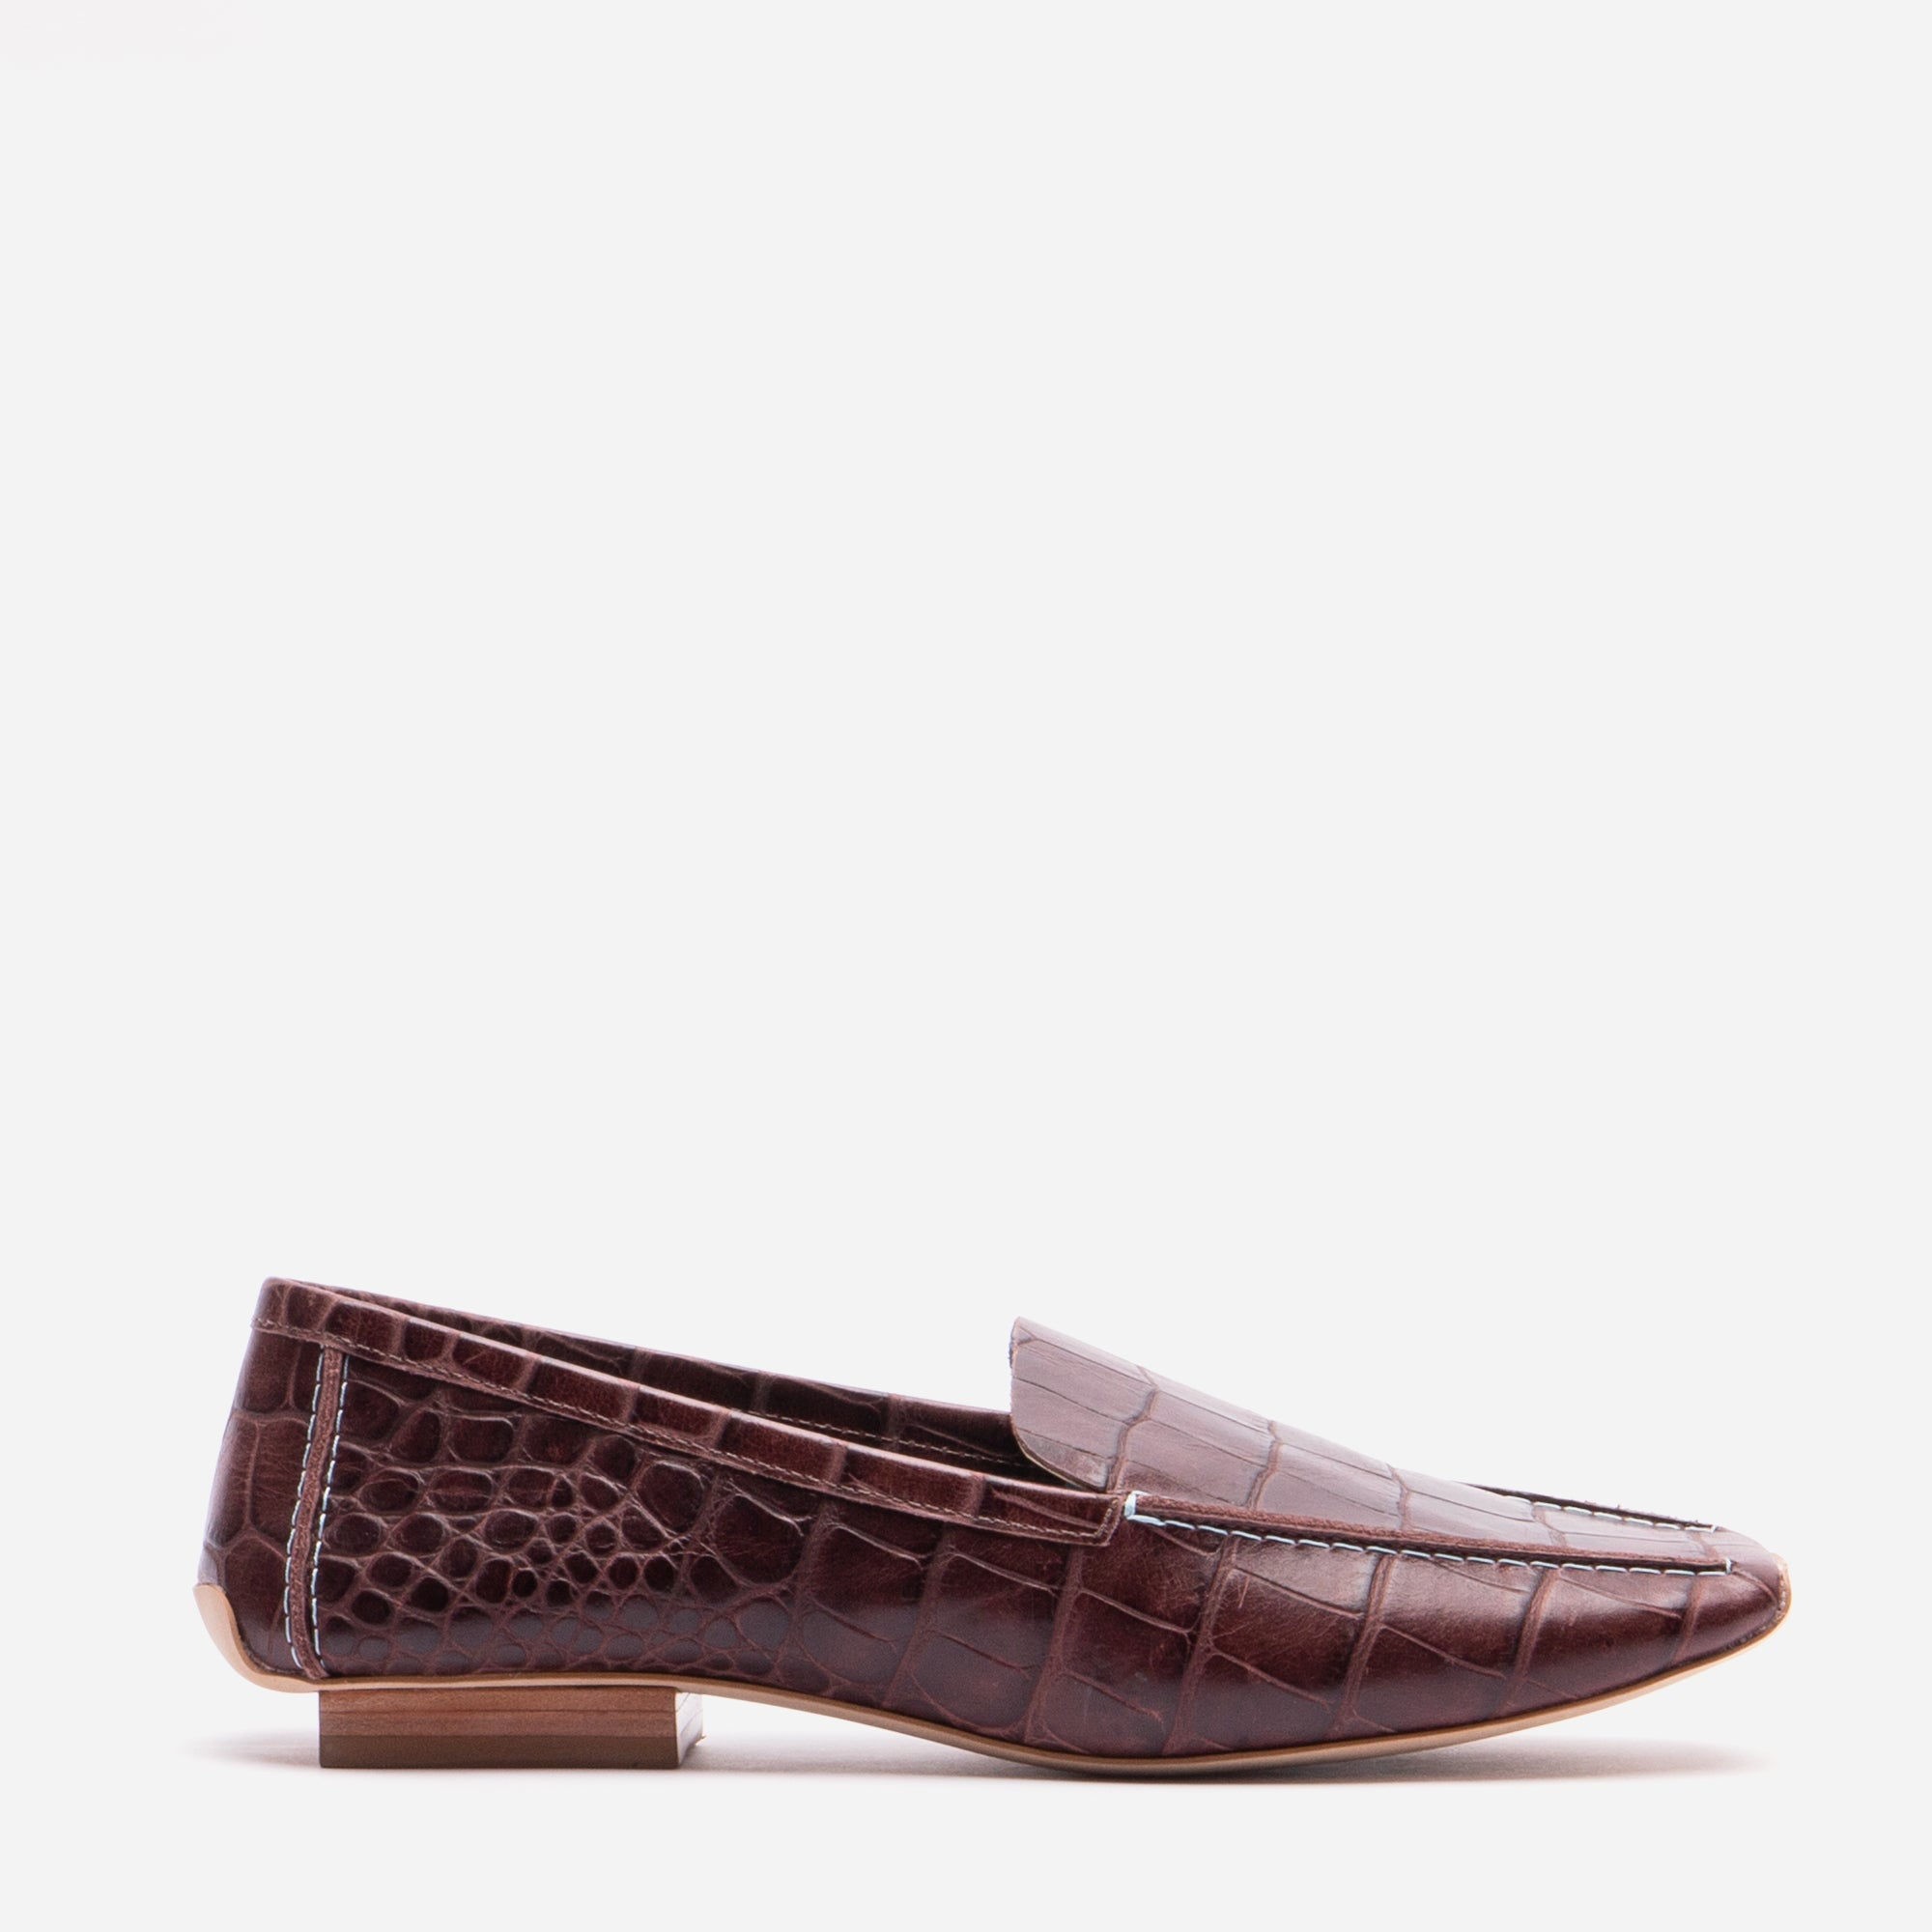 Elyce Loafer Croc Embossed Chocolate - Frances Valentine